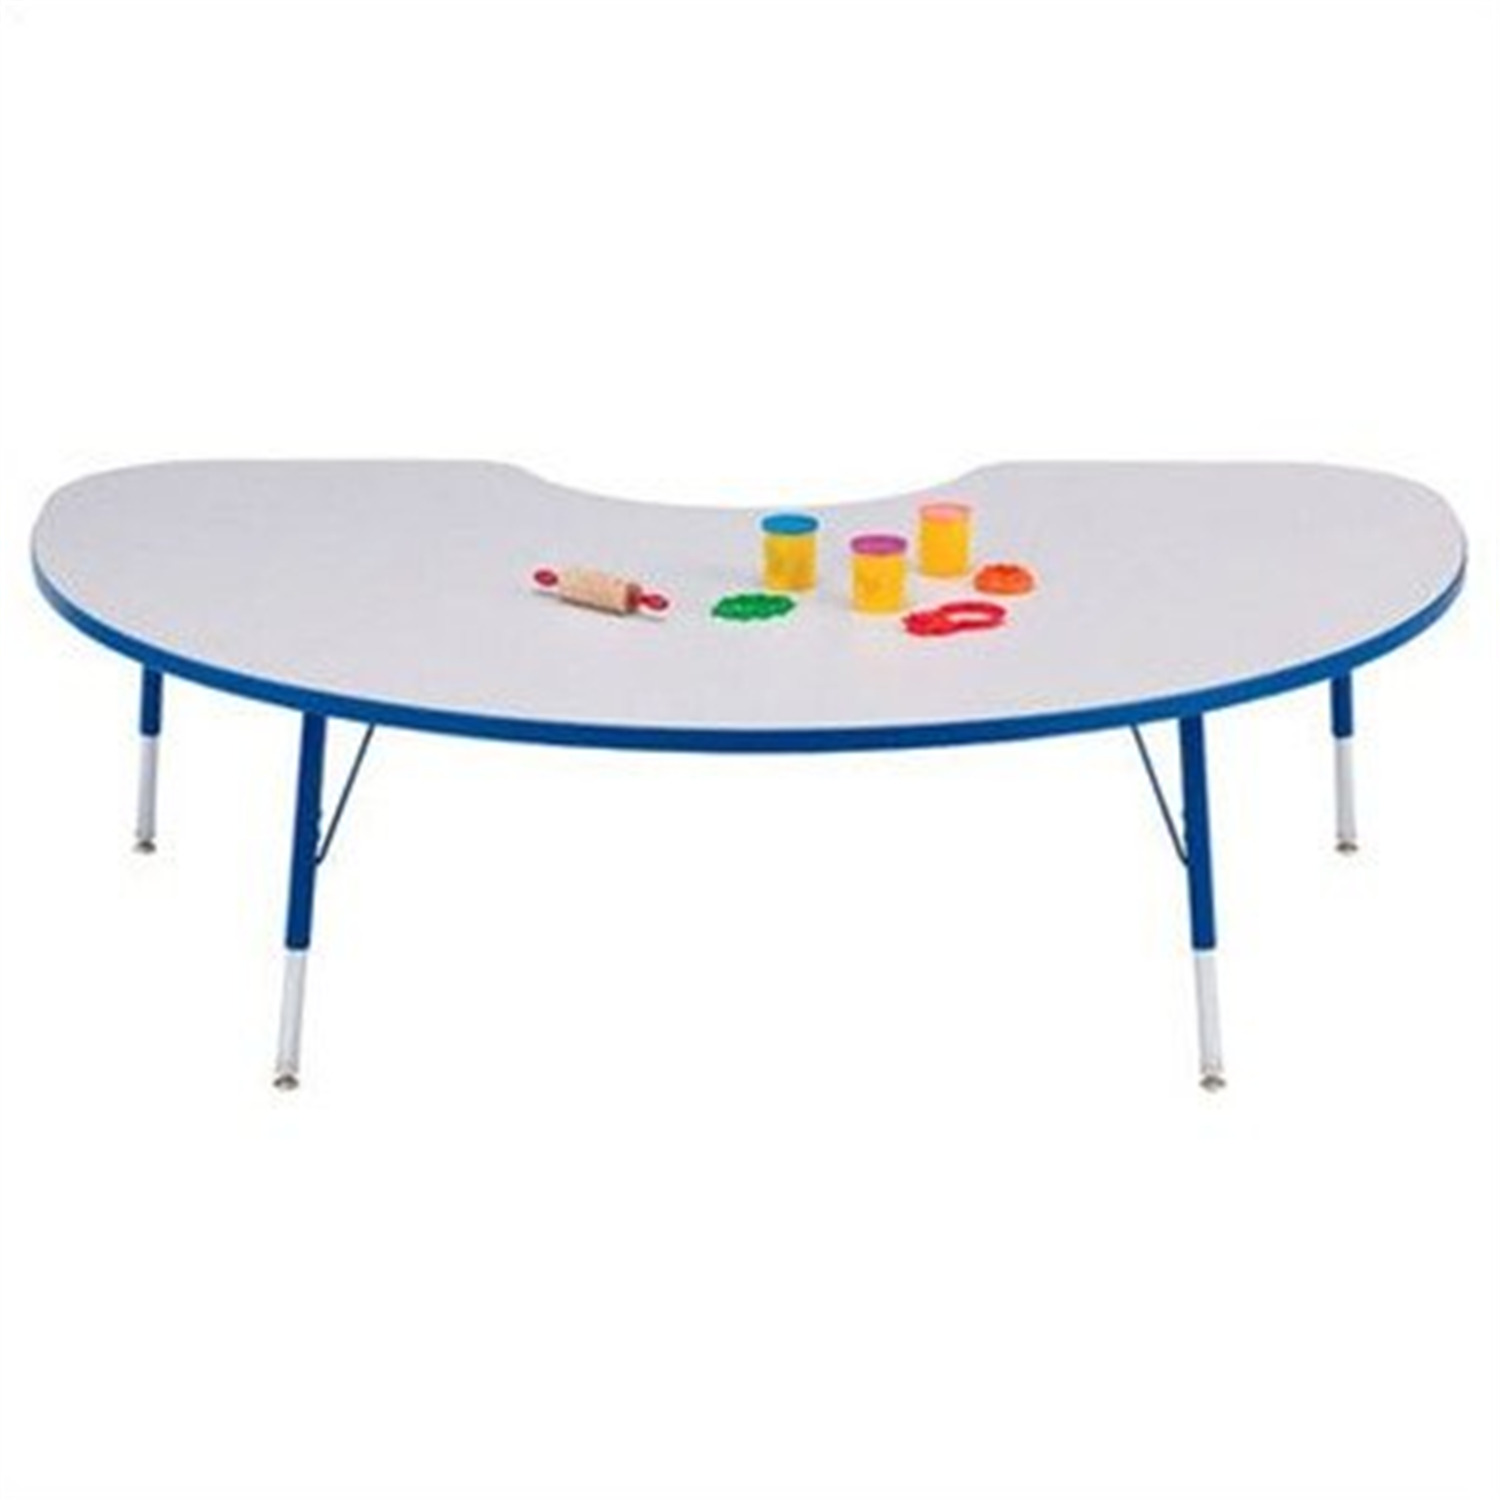 Kydz Activity Table - Kidney - [6423JCA005]